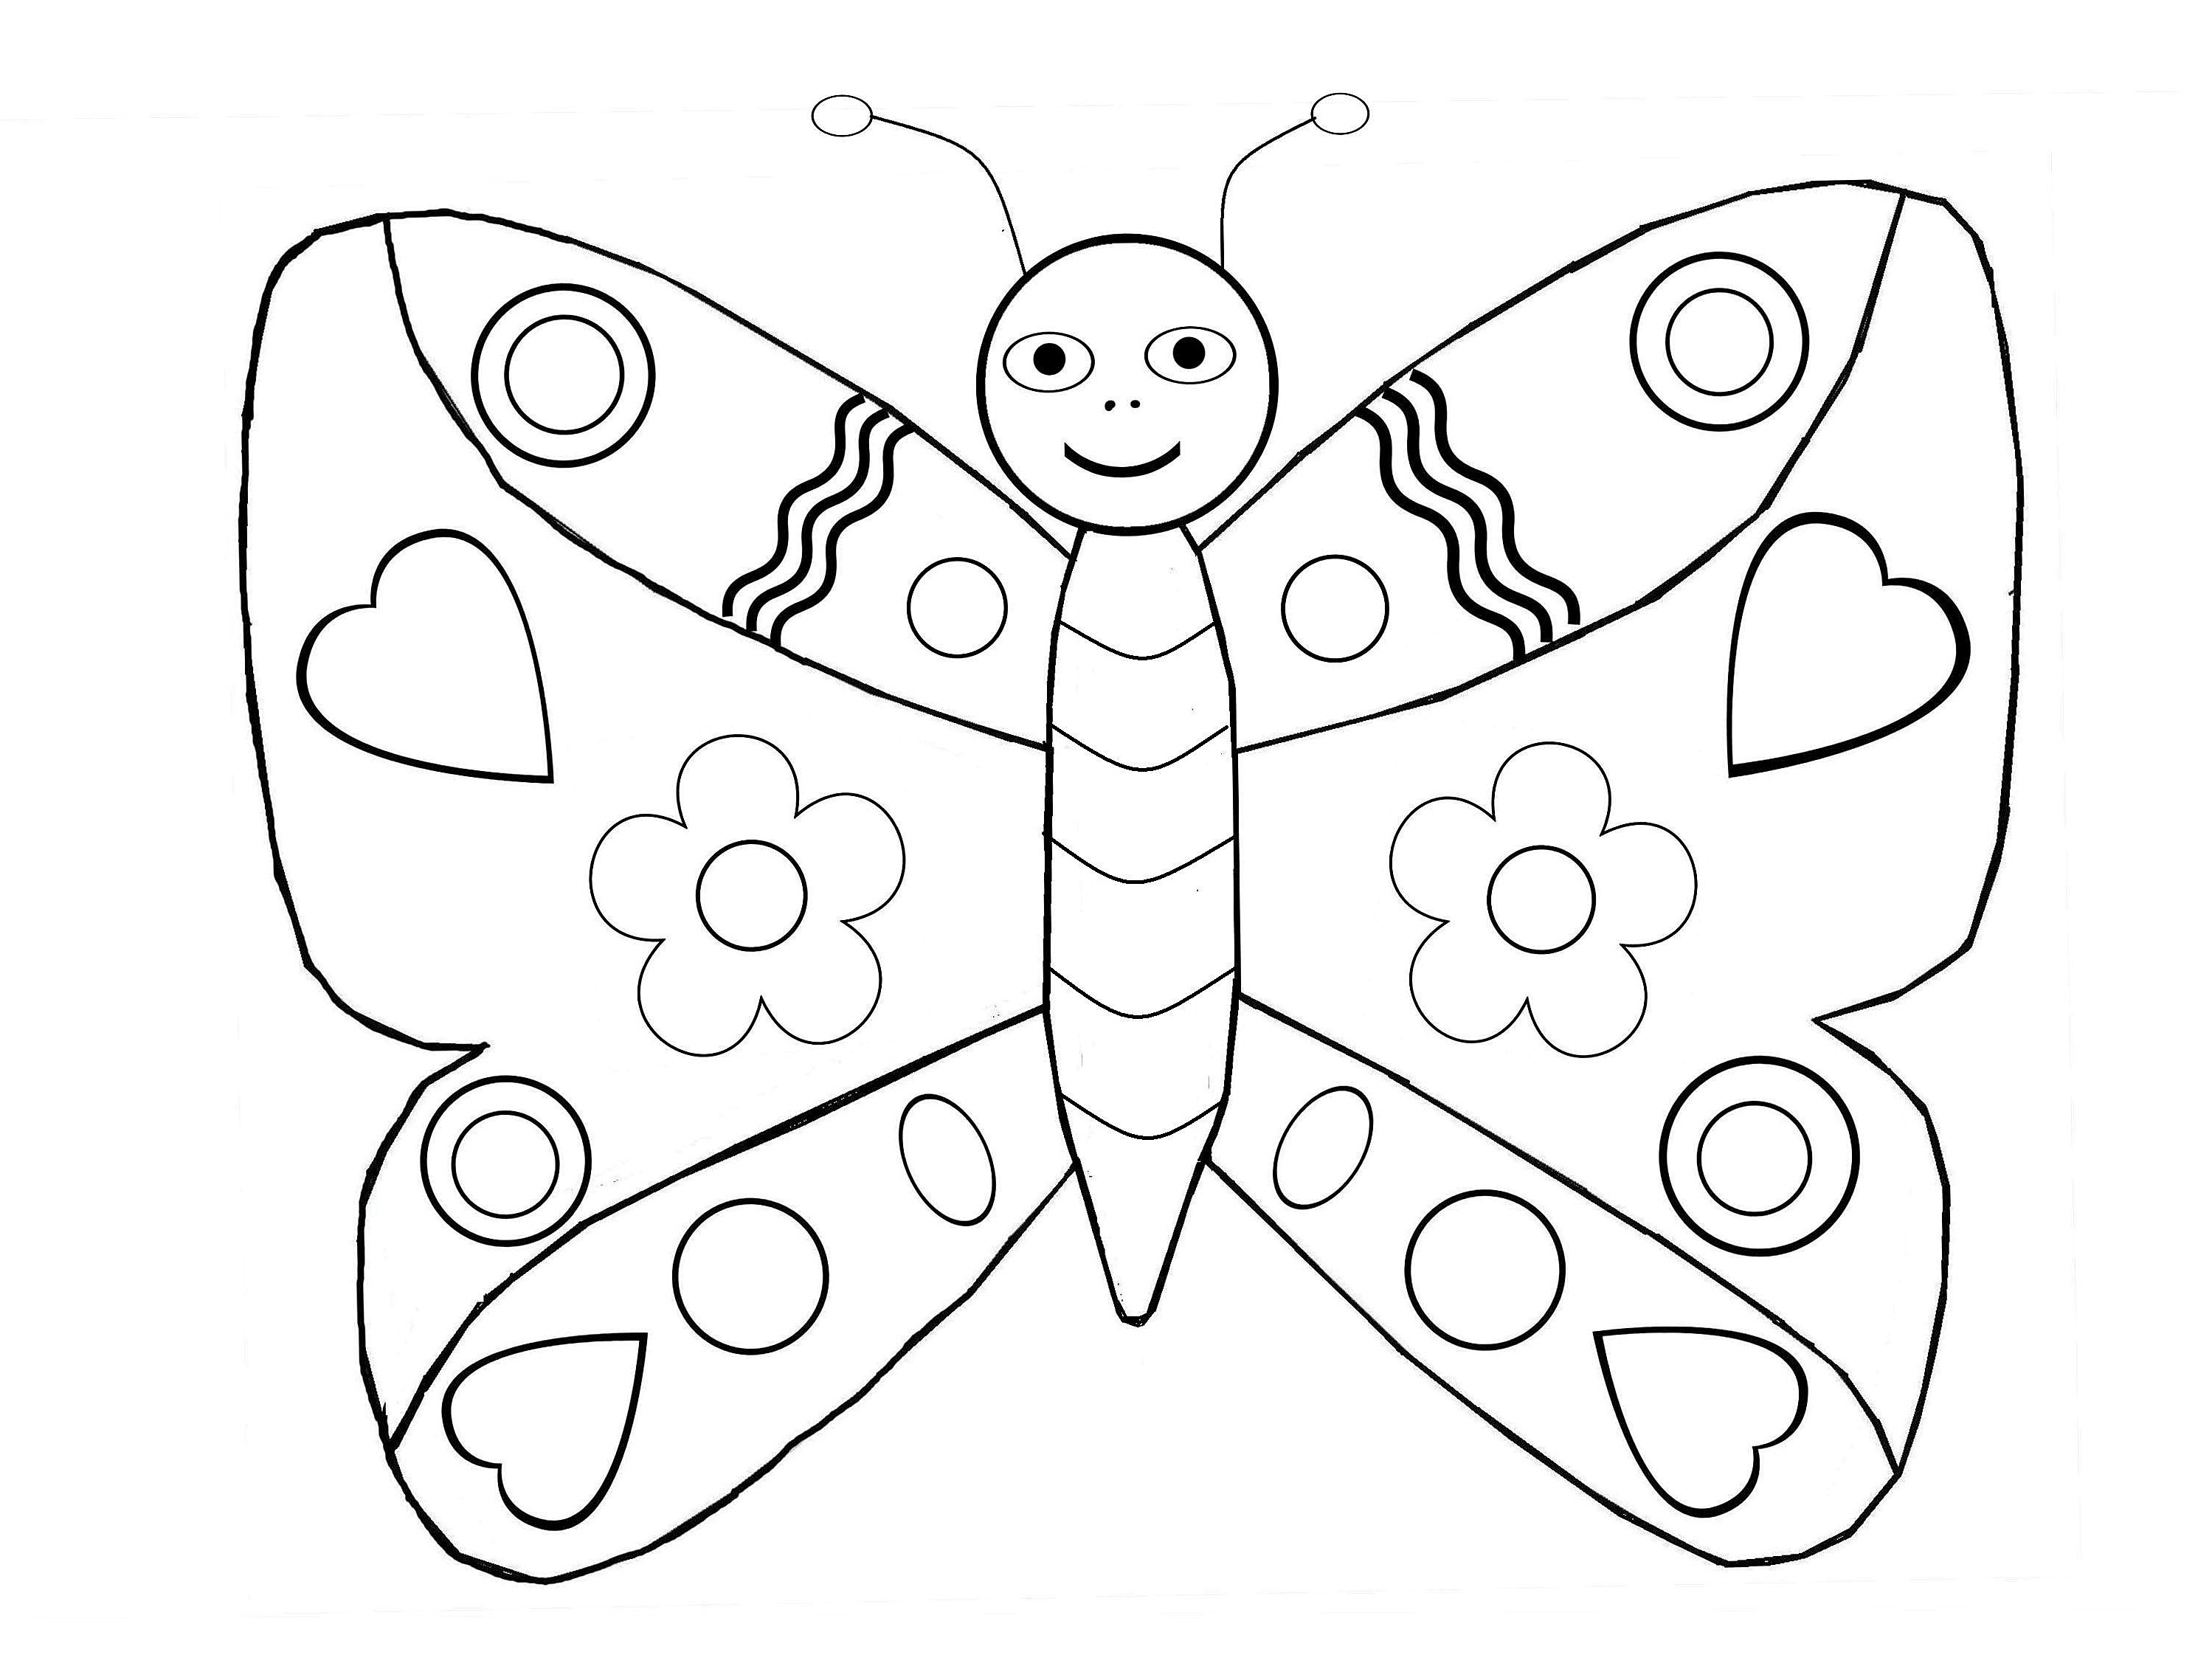 Butterflies free to color for kids - Butterflies Kids Coloring Pages